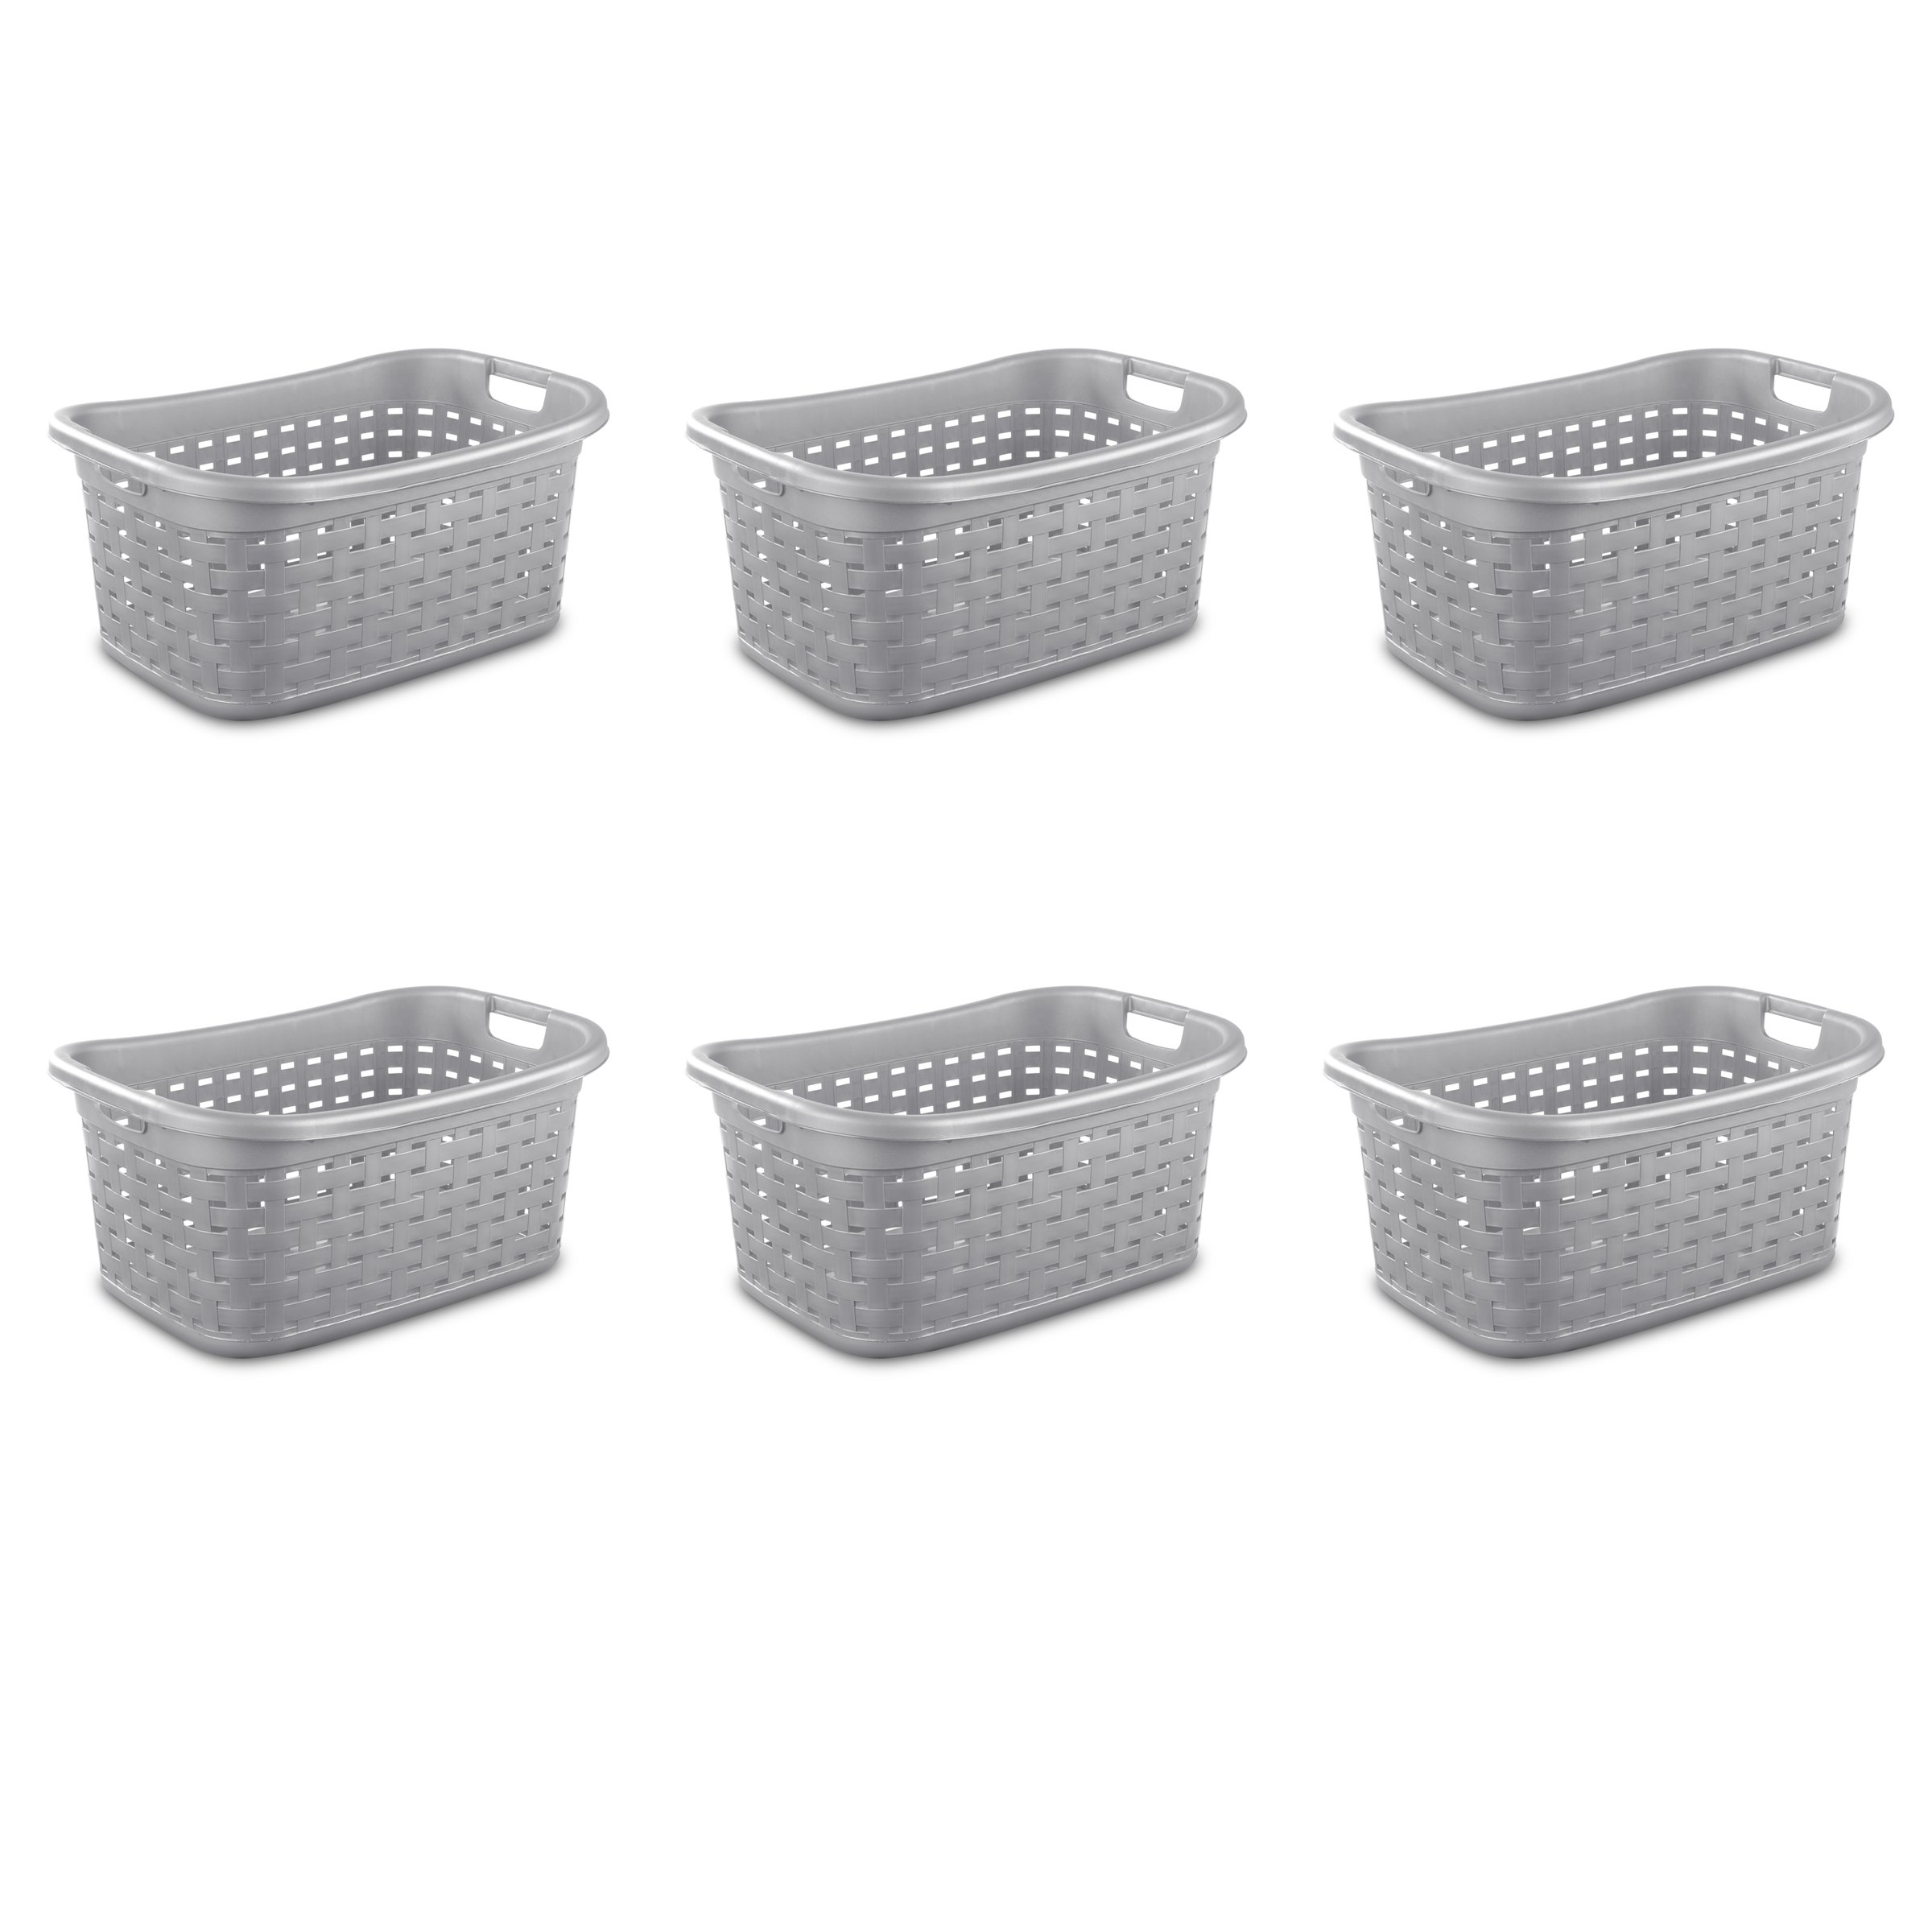 Sterilite 12756A06 Weave Laundry Basket, Cement, 6-Pack by STERILITE